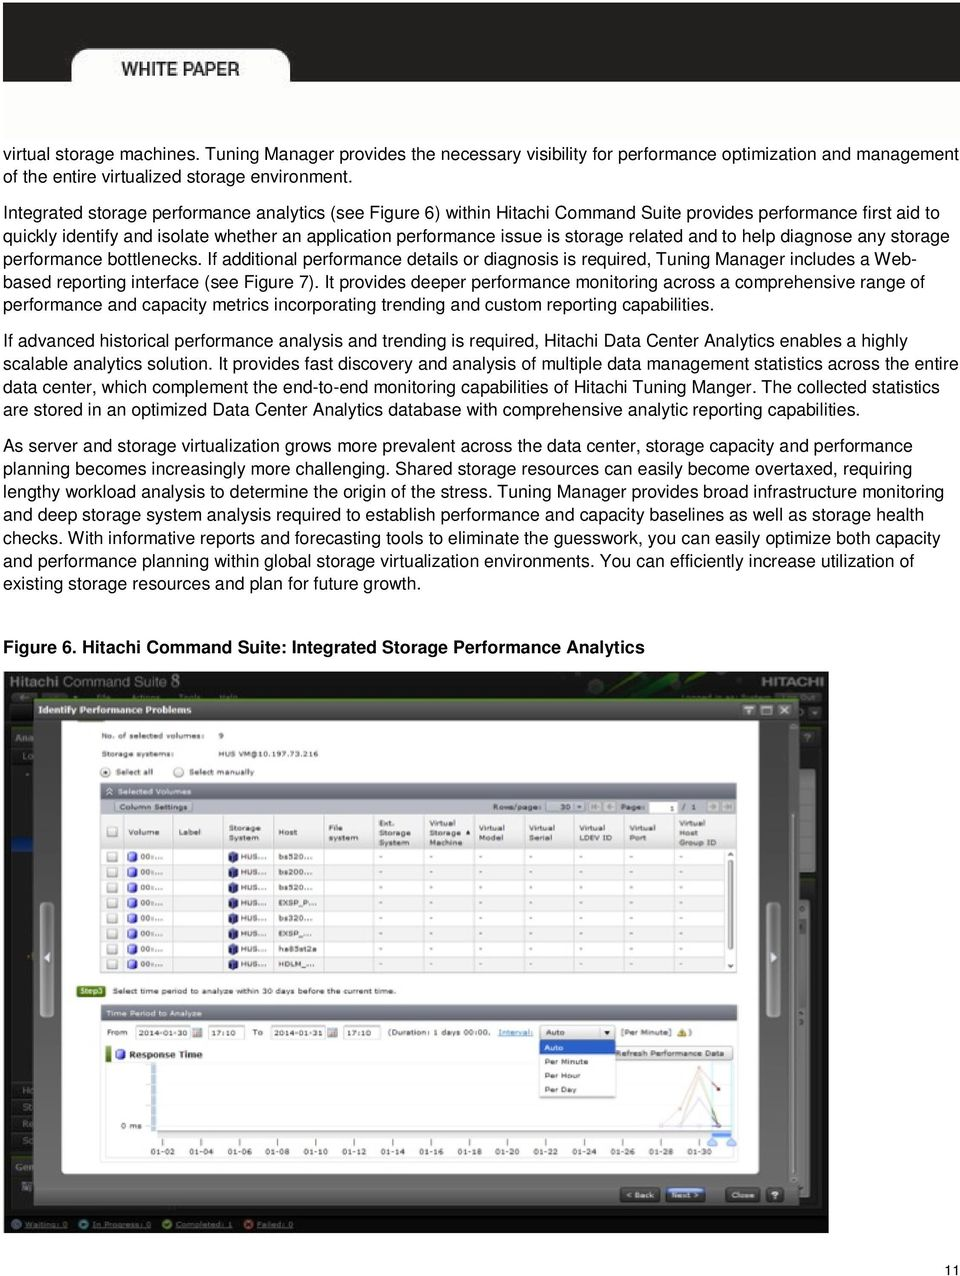 related and to help diagnose any storage performance bottlenecks. If additional performance details or diagnosis is required, Tuning Manager includes a Webbased reporting interface (see Figure 7).